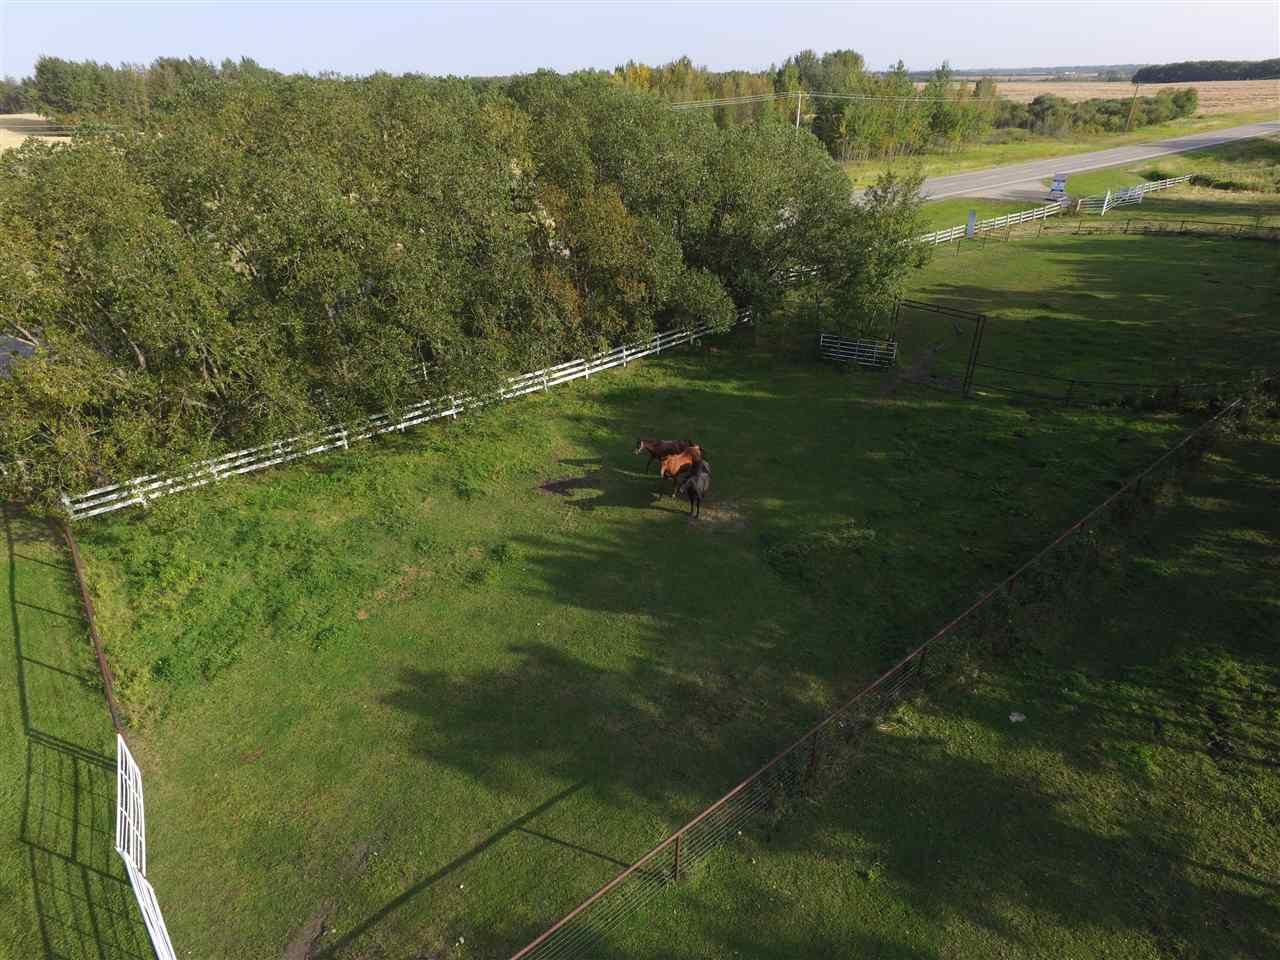 Photo 10: Photos: 472050A Hwy 814: Rural Wetaskiwin County House for sale : MLS®# E4213442